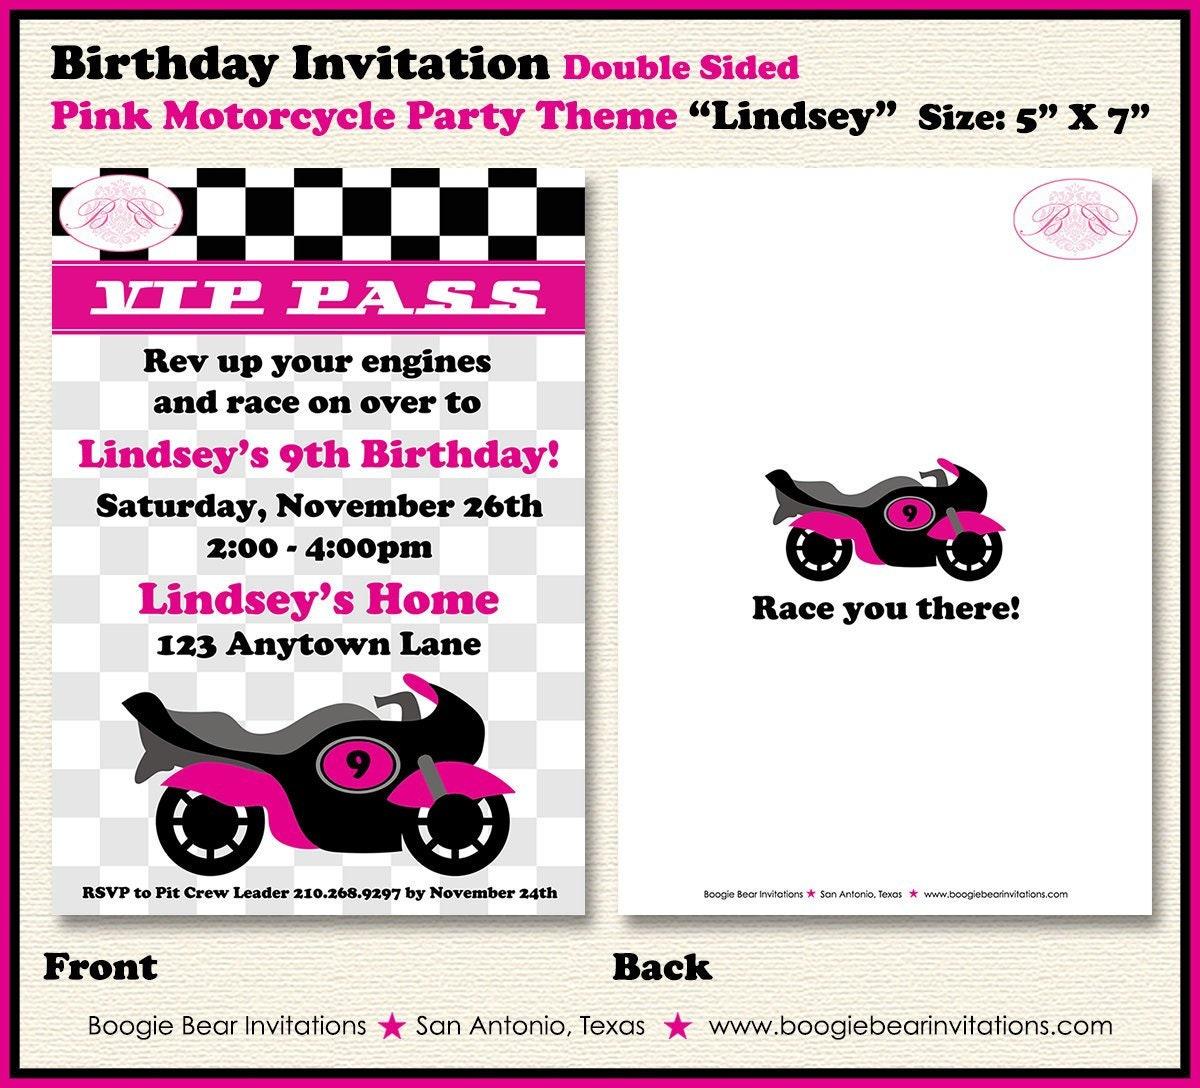 Pink Motorcycle Party Invitation Birthday Girl 1st 2nd 3rd 4th 5th 6th 7th 8th 9th Boogie Bear Lindsey Theme Paperless Printable Printed